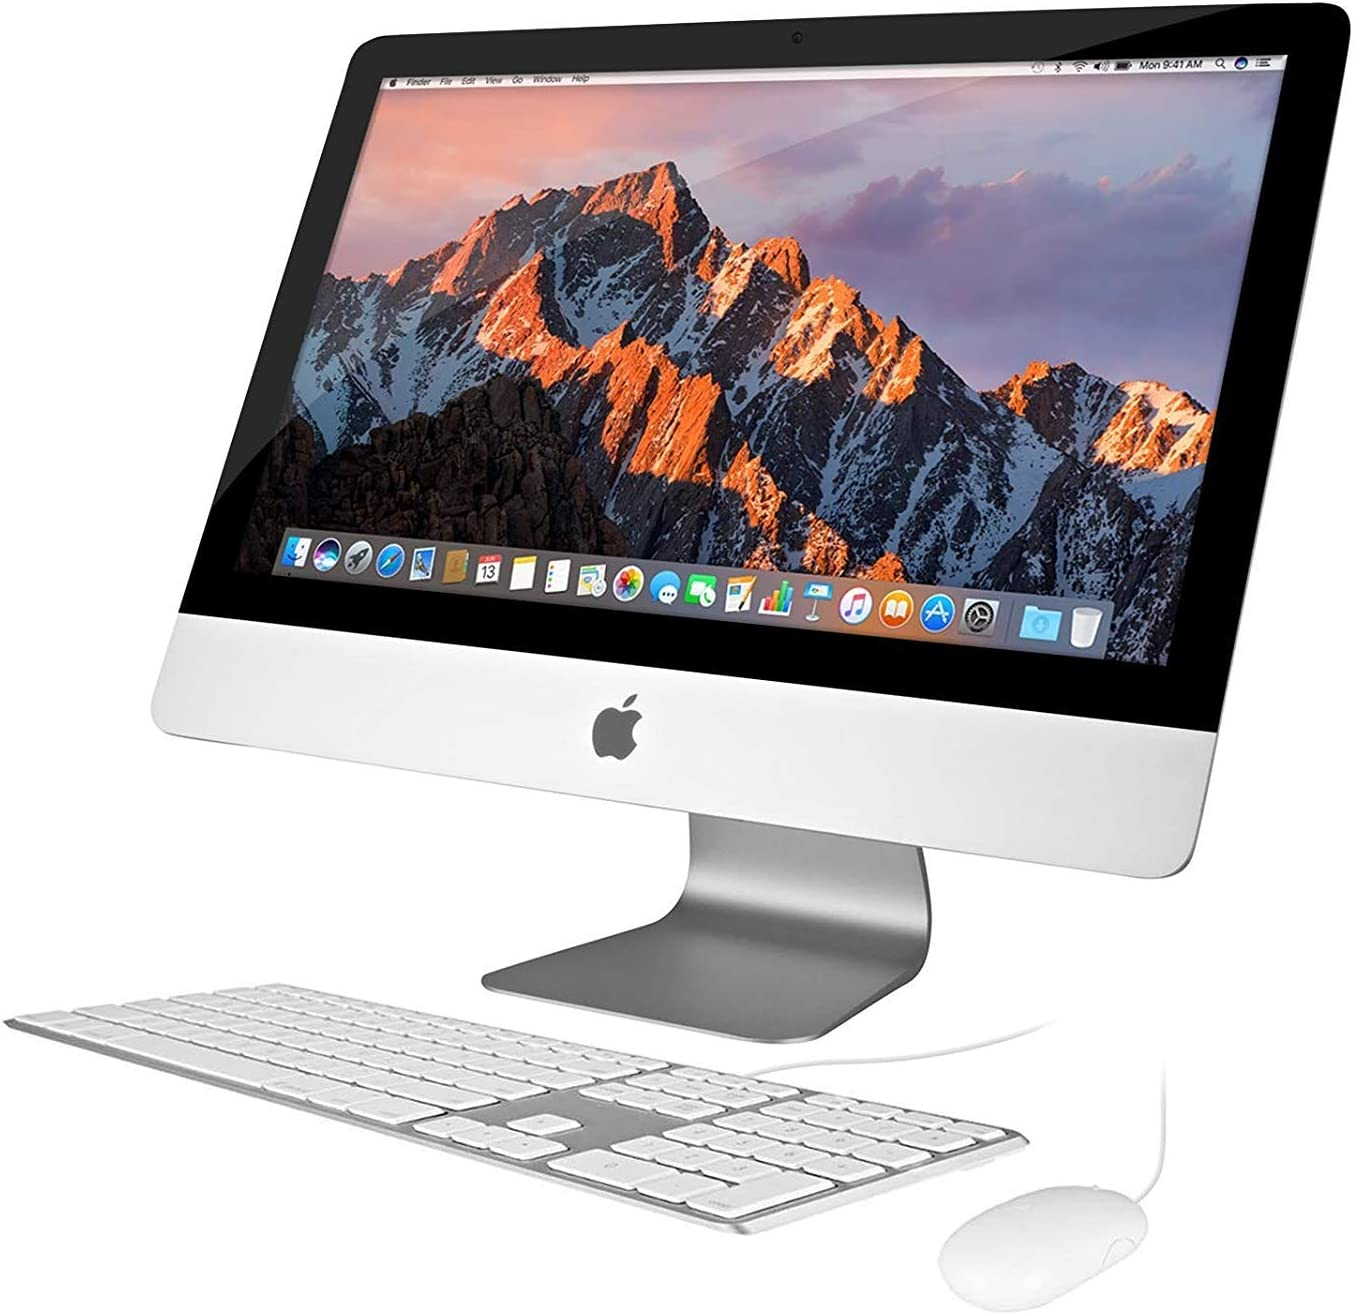 Apple iMac MD094LL/A 21.5-Inch Desktop Intel Core i7 3.1 GHz 1Tb HDD, 8GB Ram (Renewed)